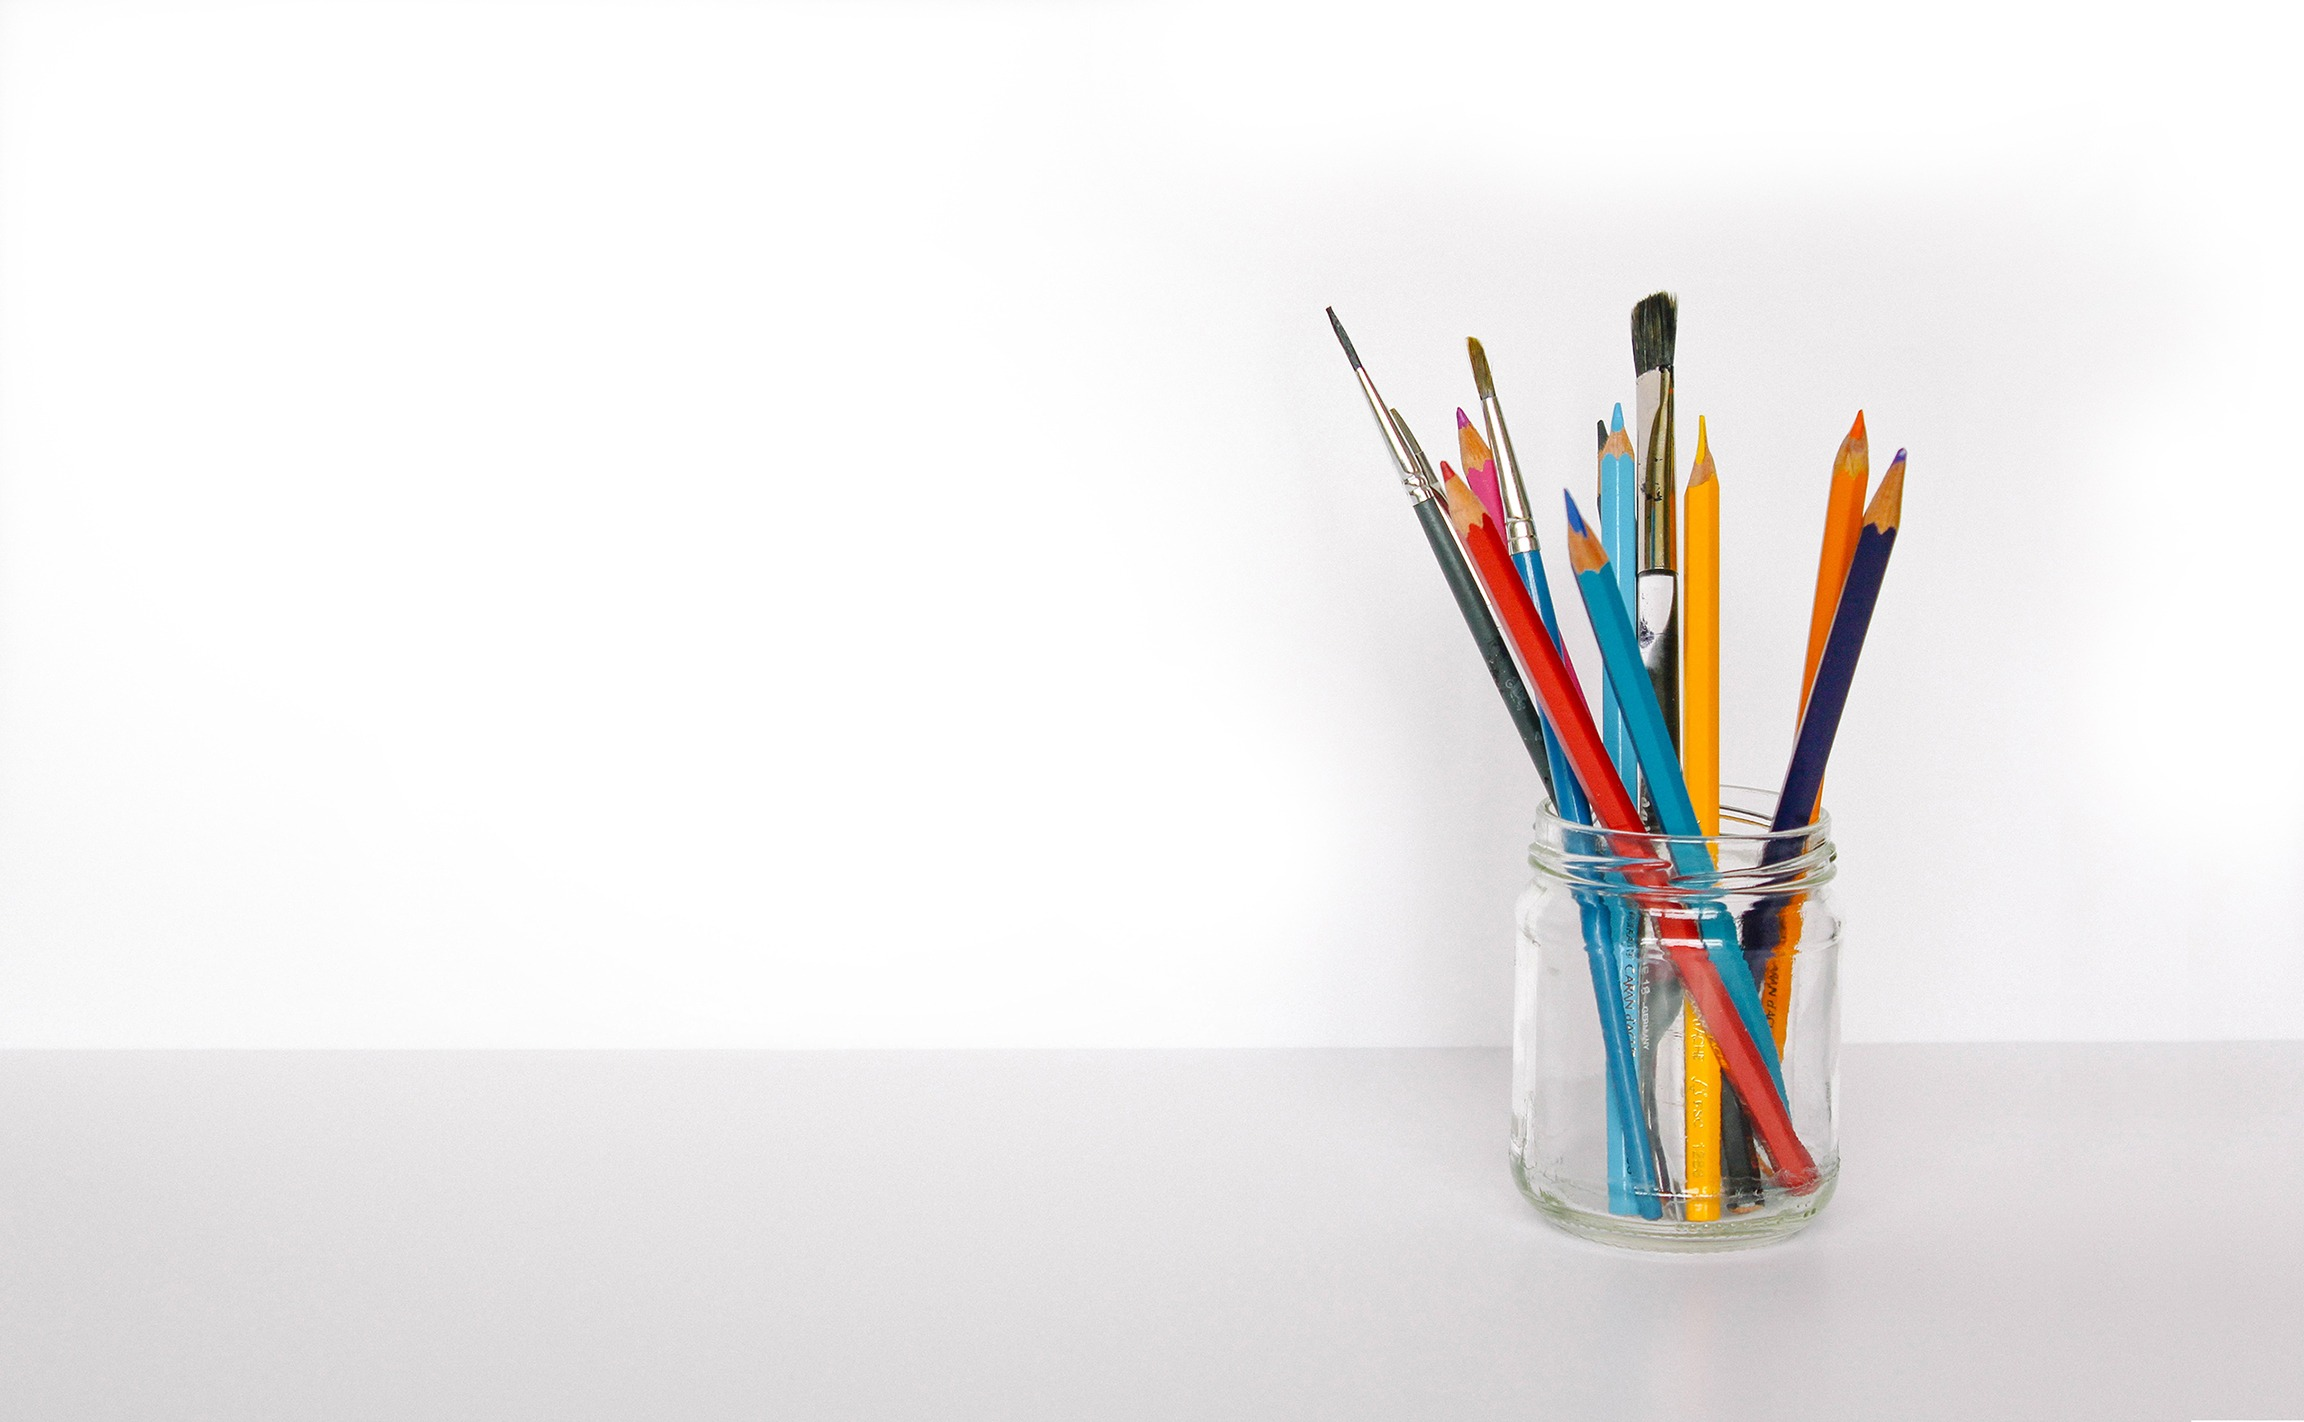 Colouring pencils and paint brushes in a glass jar